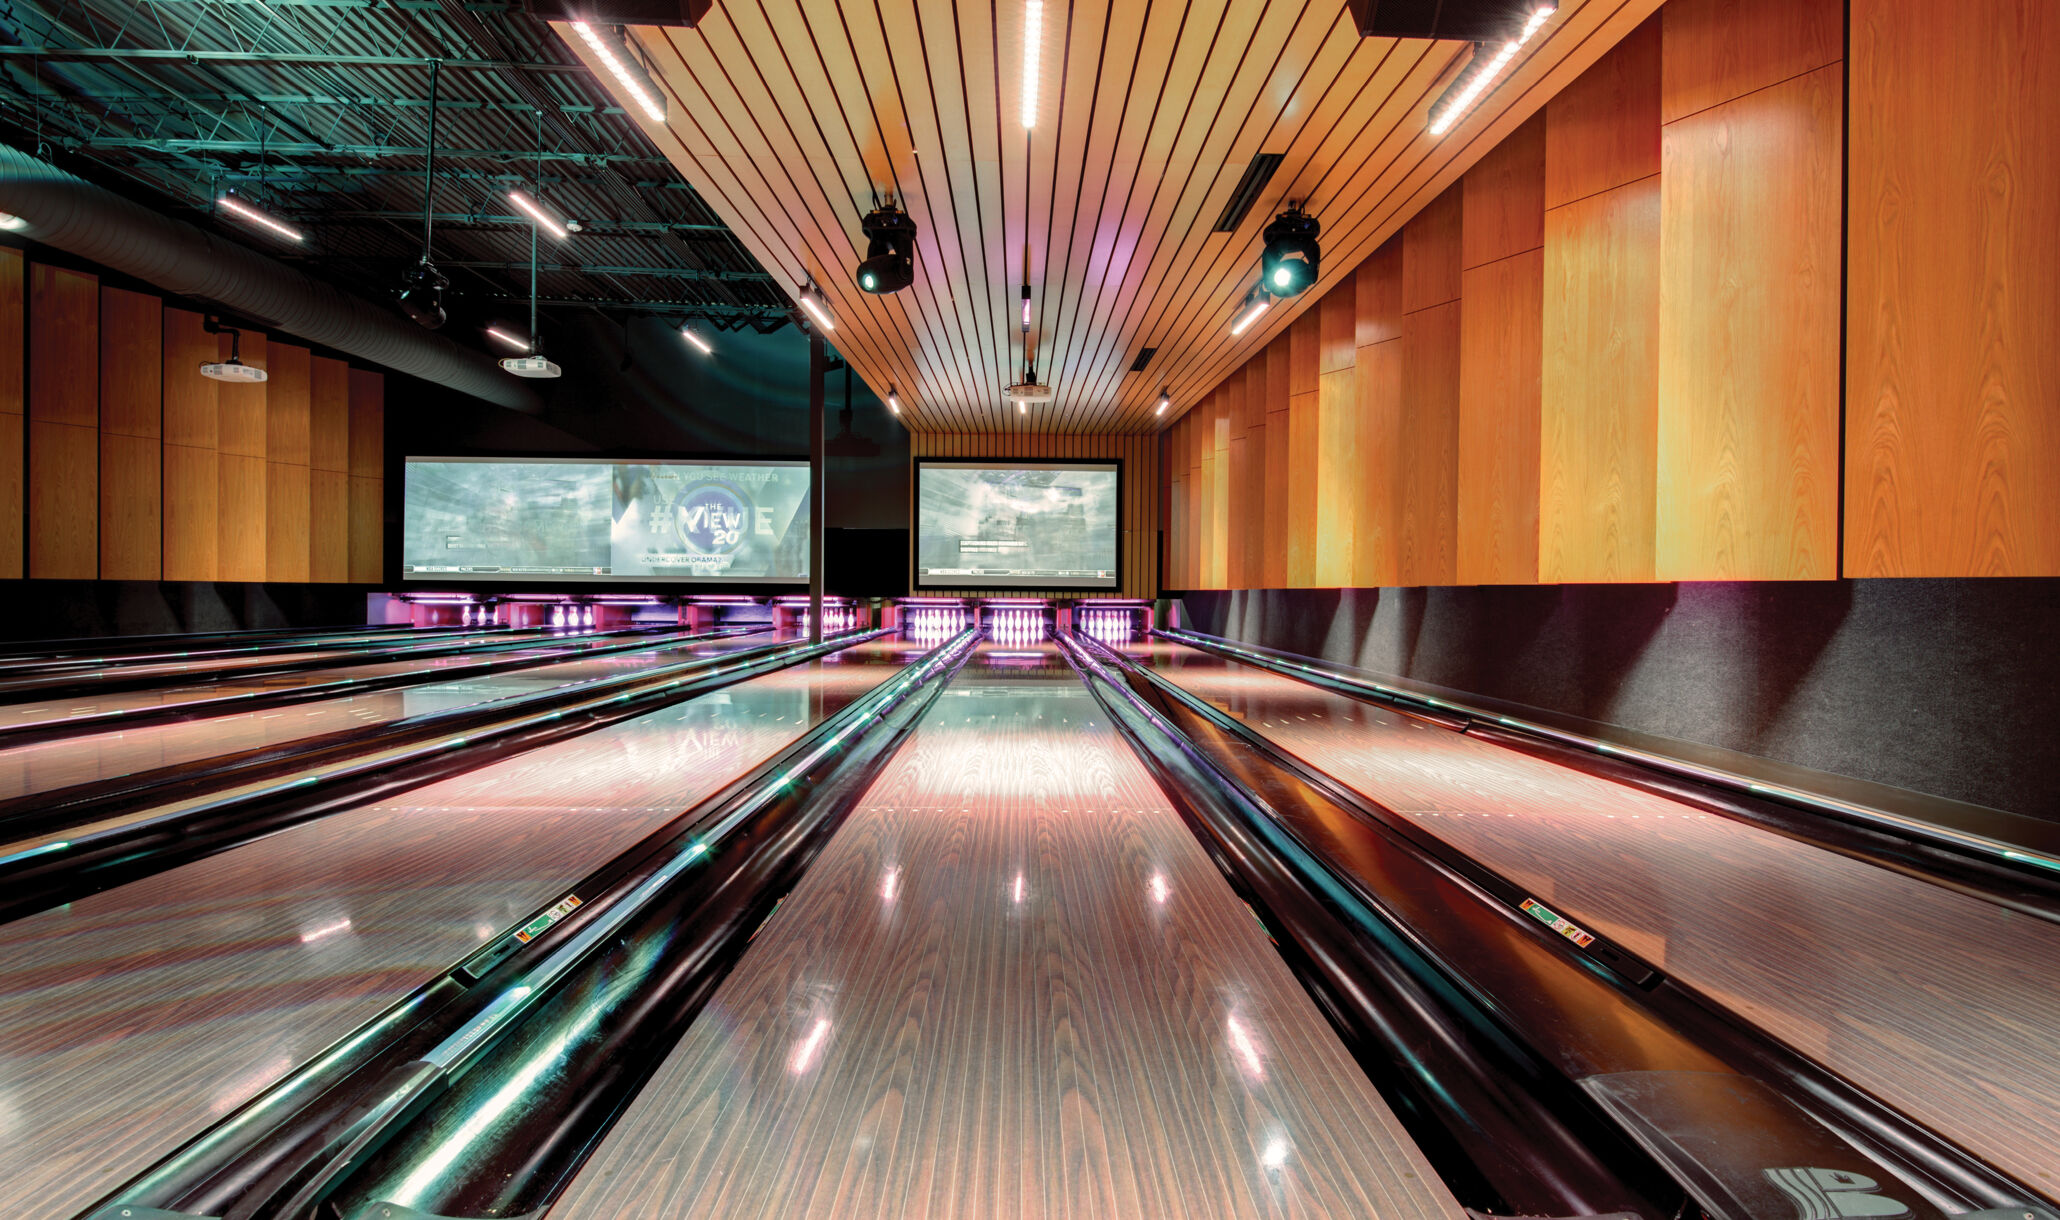 The spot bowling san marcos